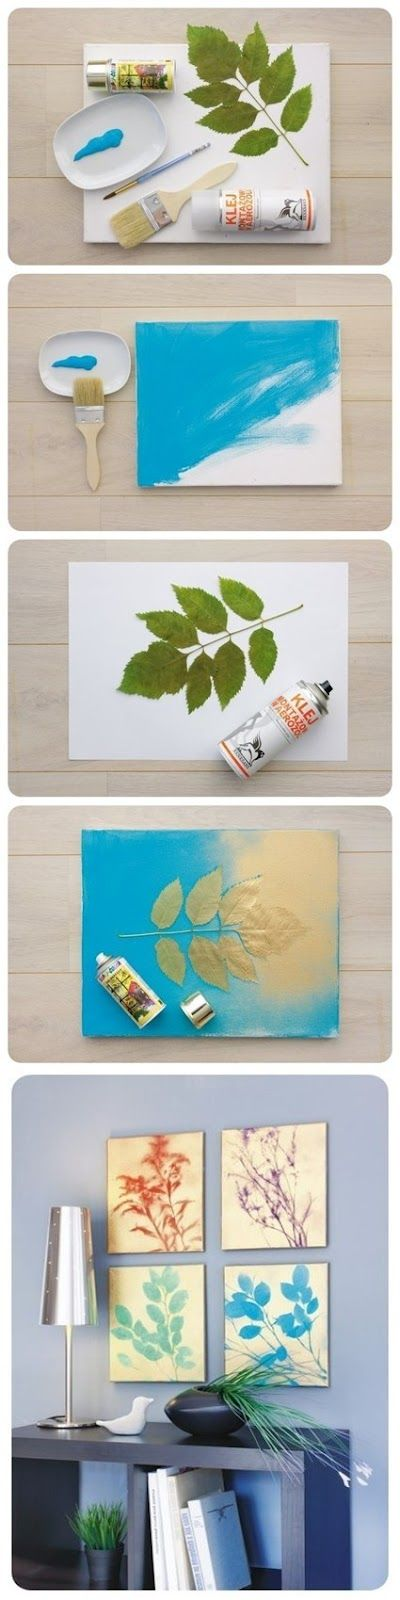 Great idea for easy wall art